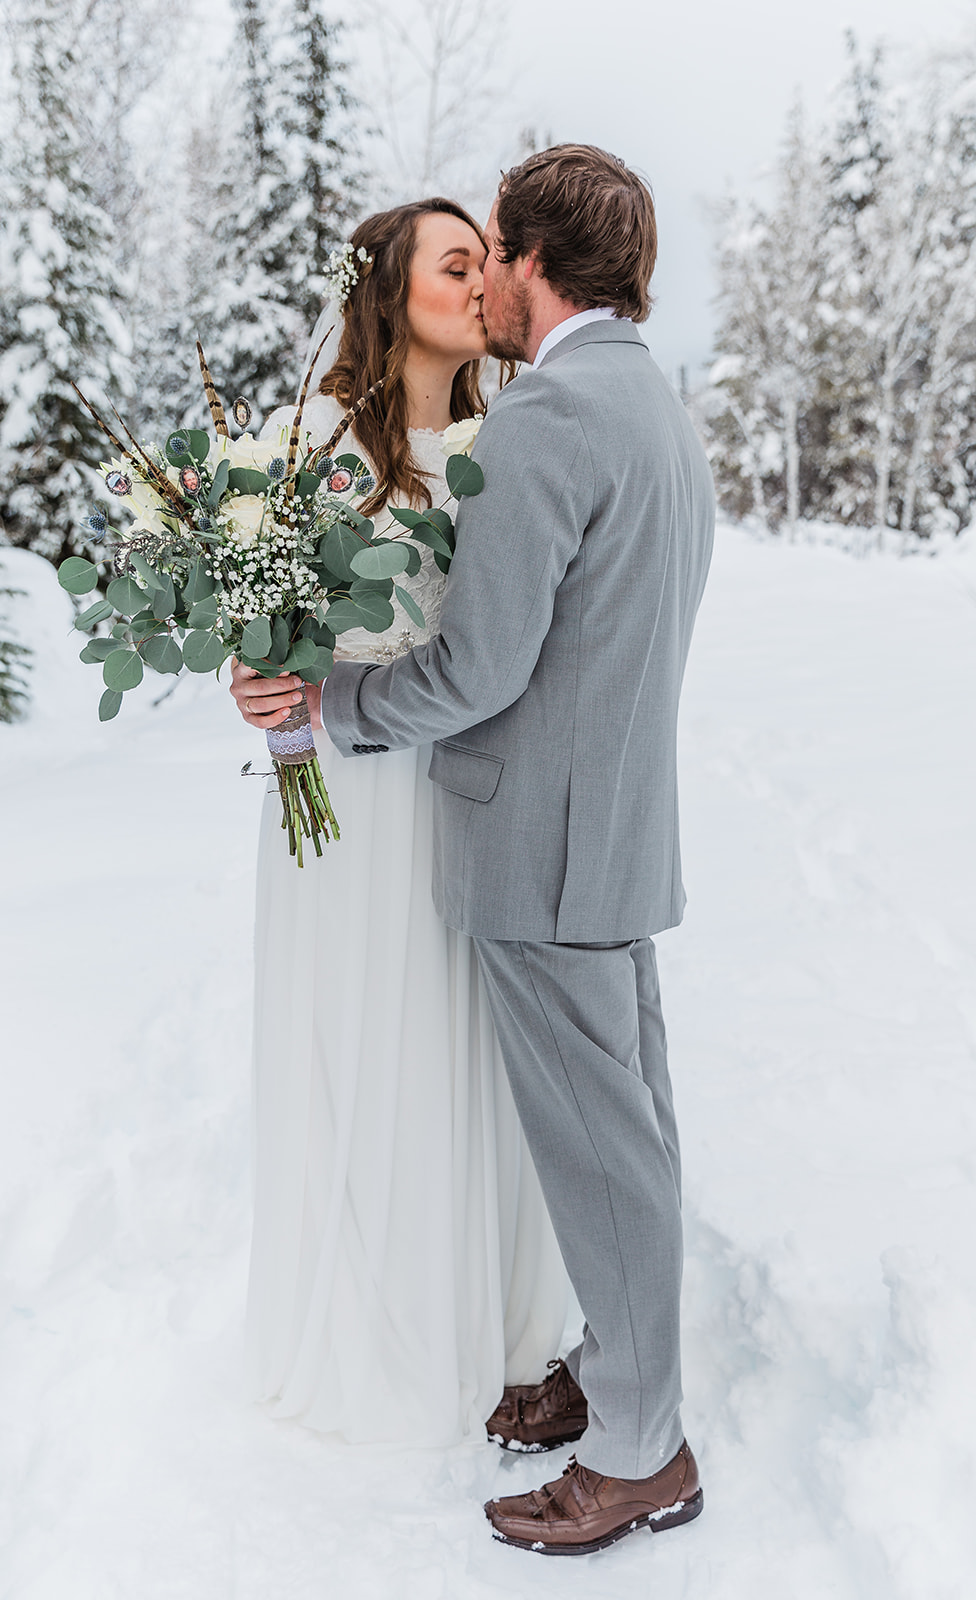 winter wedding bouquet inspiration wedding dress inspiration winter wedding goals beautiful couple man and wife cache valley winter destinations professional photographer tony's grove kissing couple wedding aesthetic inspiration wedding #winterwedding #formals #tony'sgrove #cachevalley #snowcoveredtrees #bellaalderphotography #professionalphotographer #winterwonderland #couplegoals #weddingattire